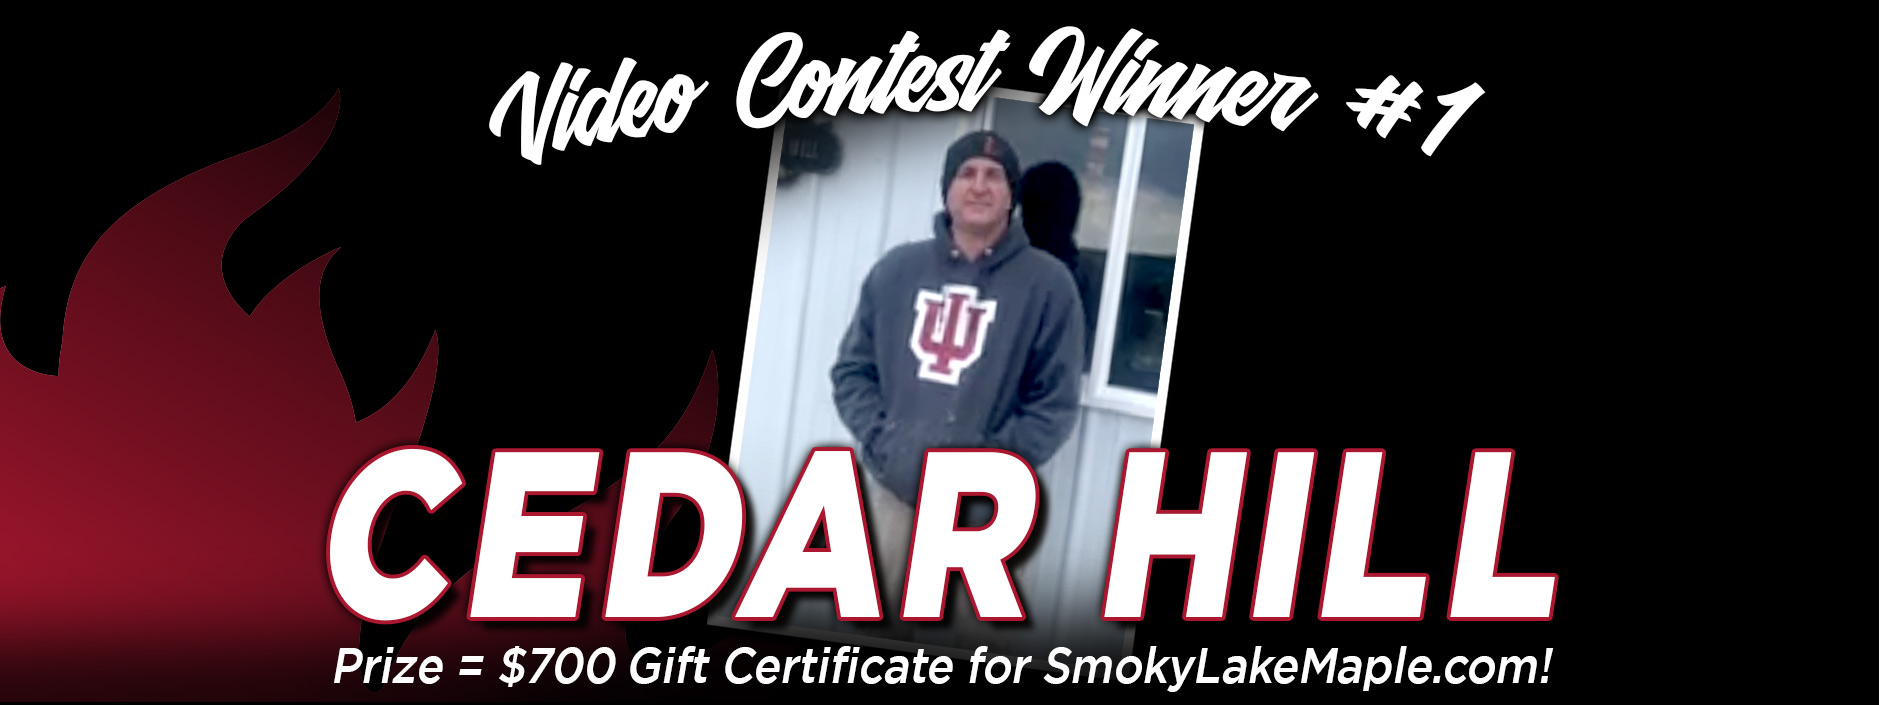 Video Contest Winner is Cedar Hill